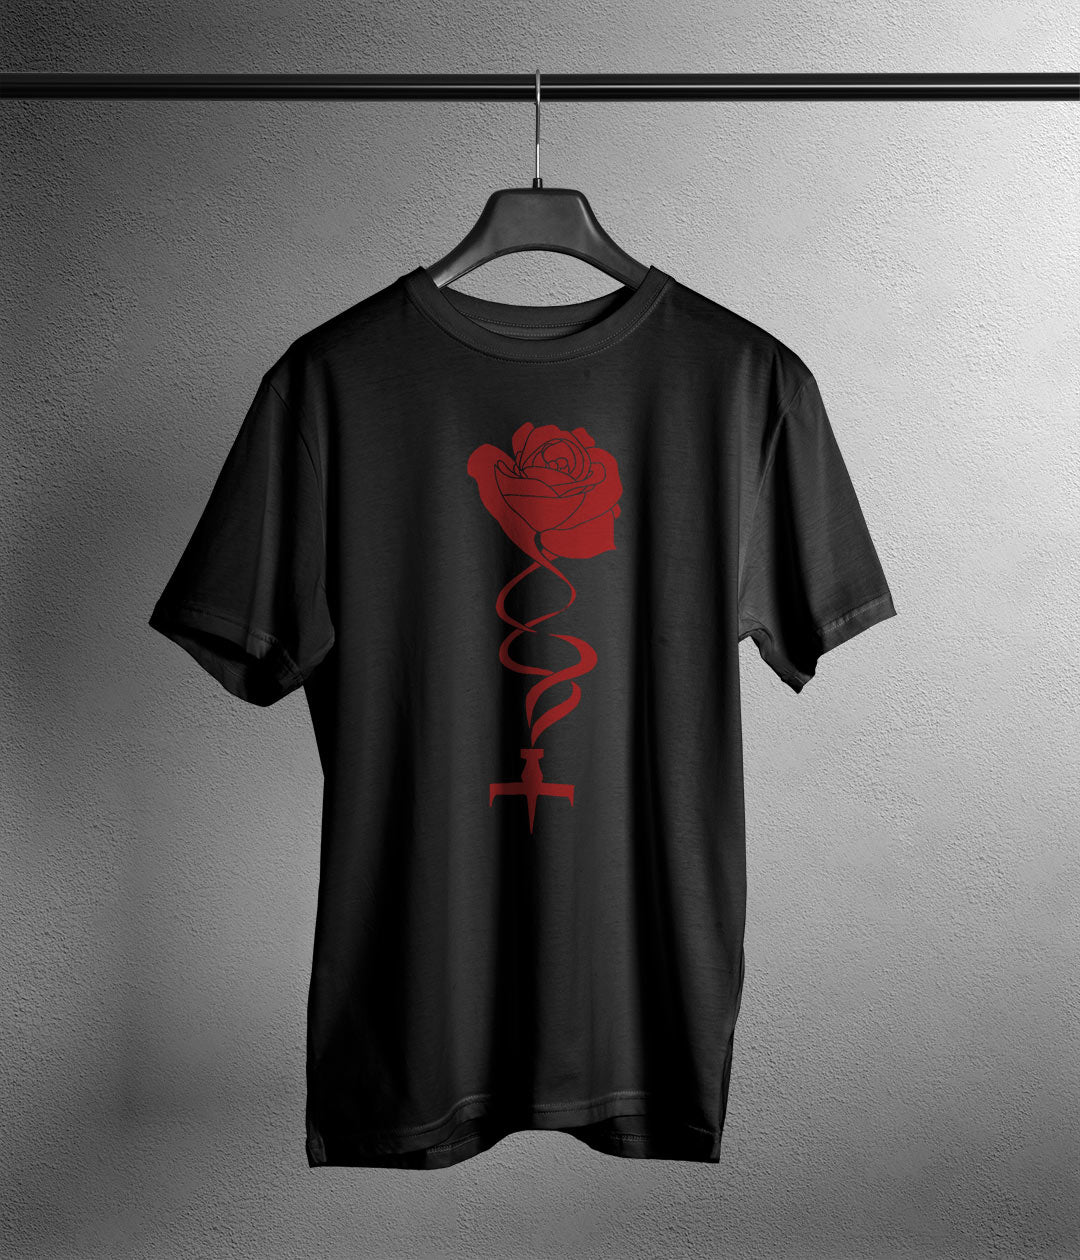 black t shirt with anime style rose and ship printed in red